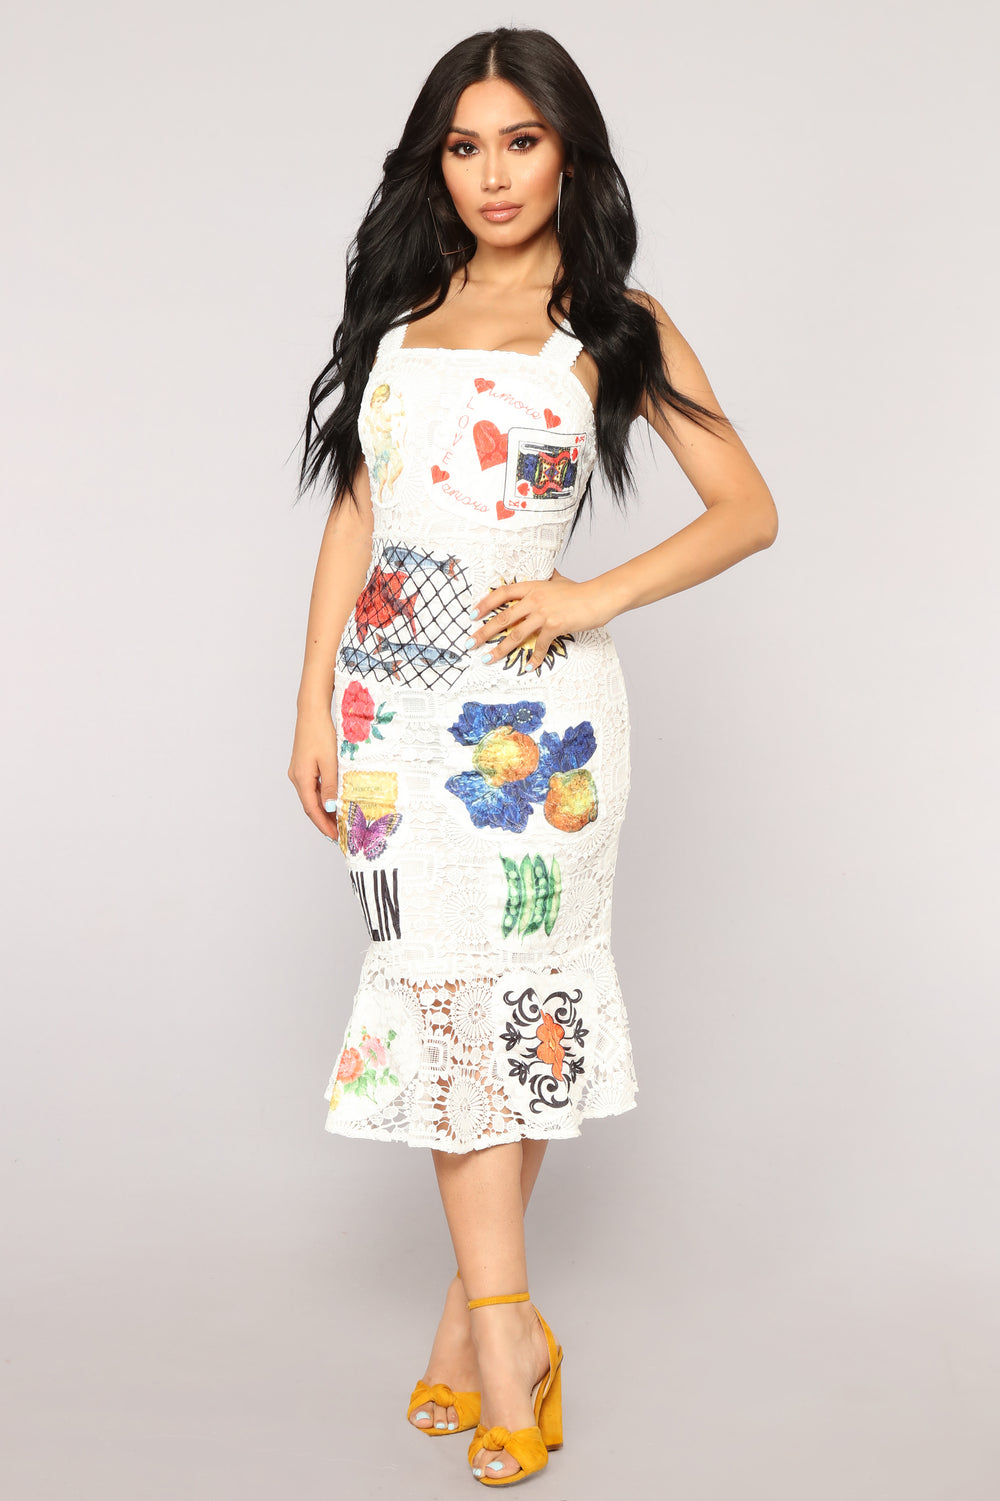 Monte Carlo Dress - White